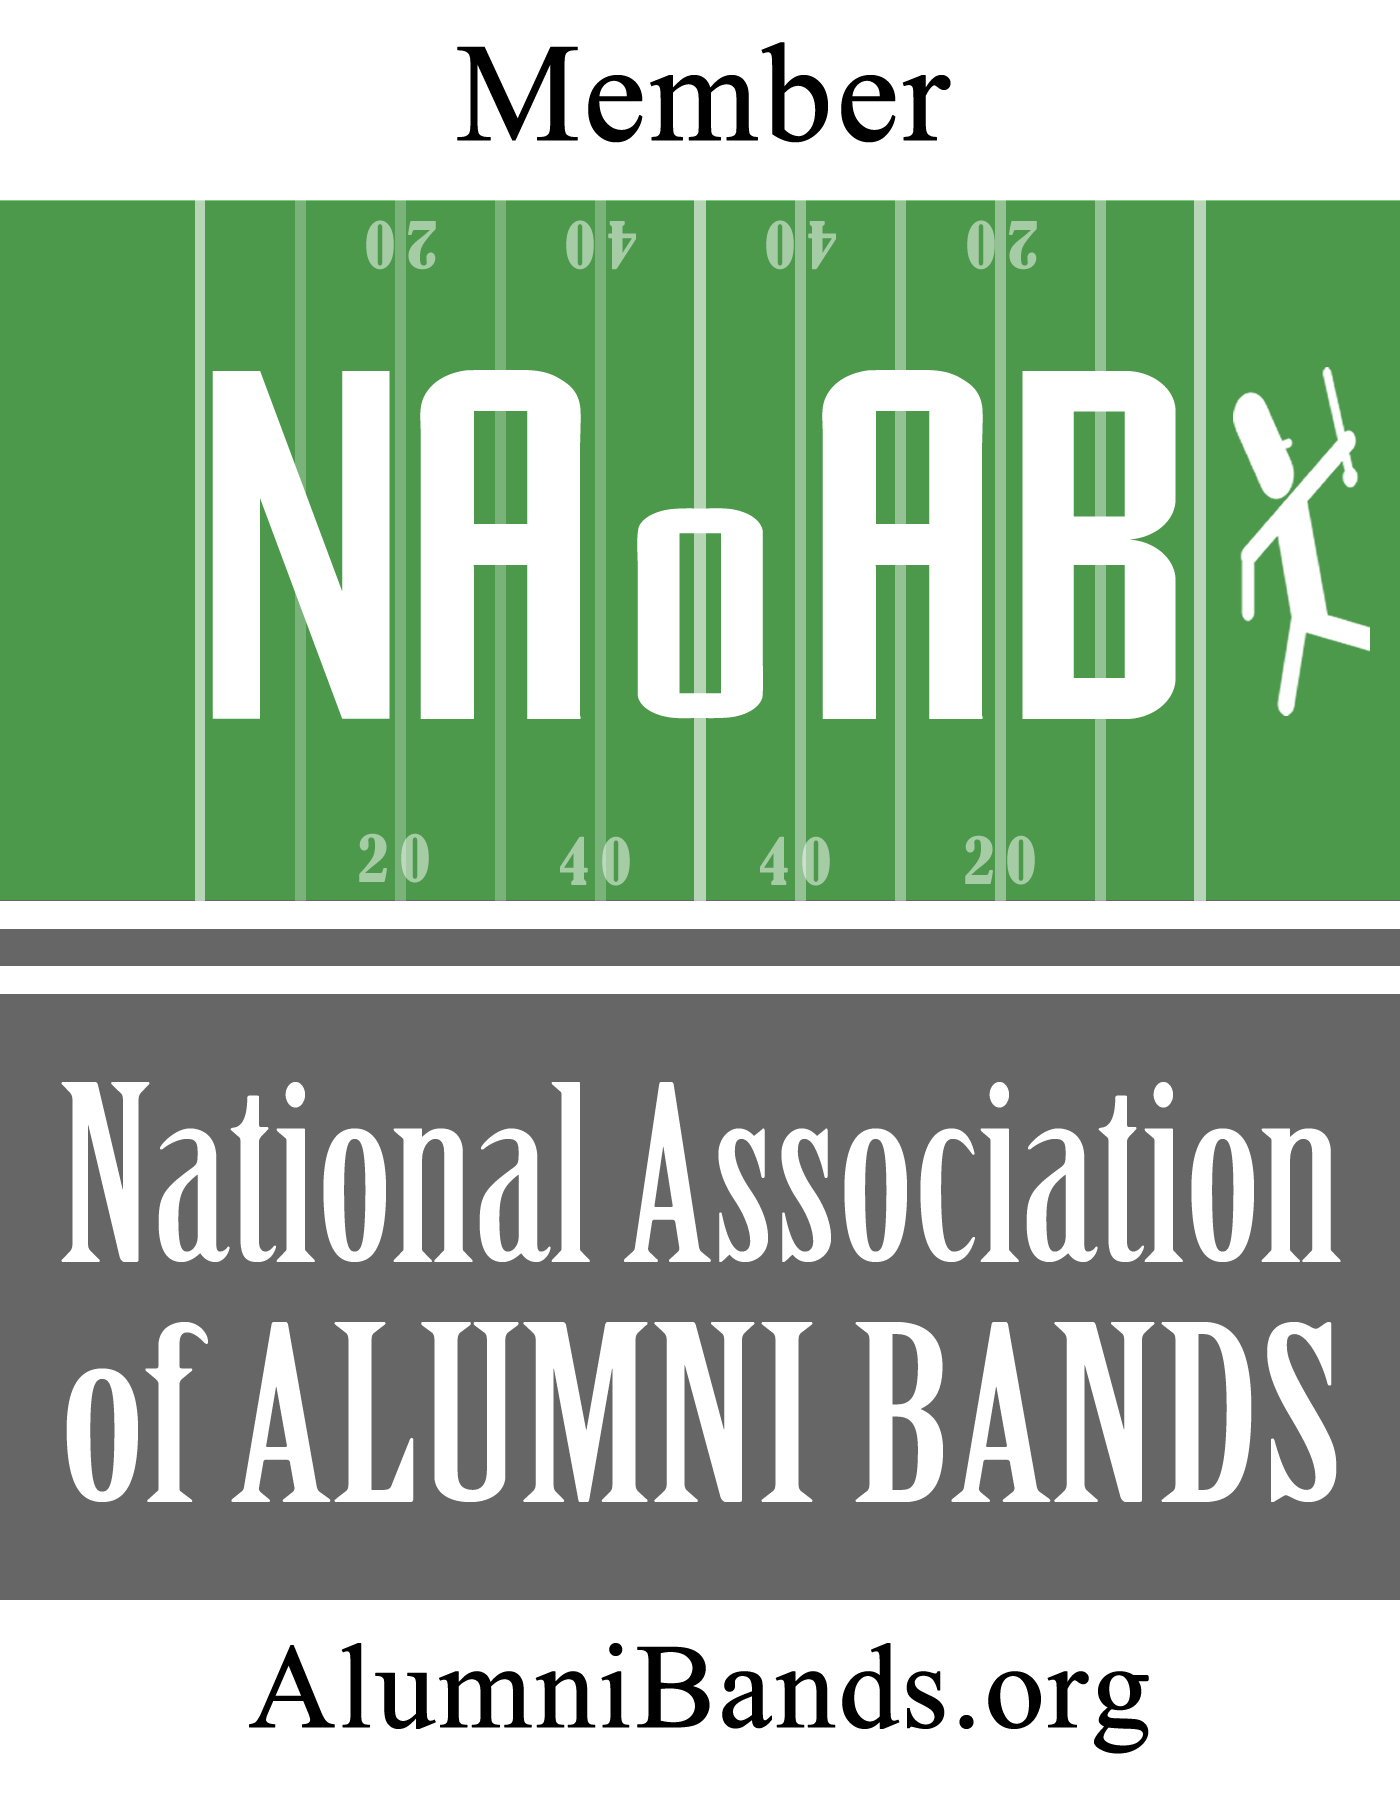 Member of the National Association of Alumni Bands